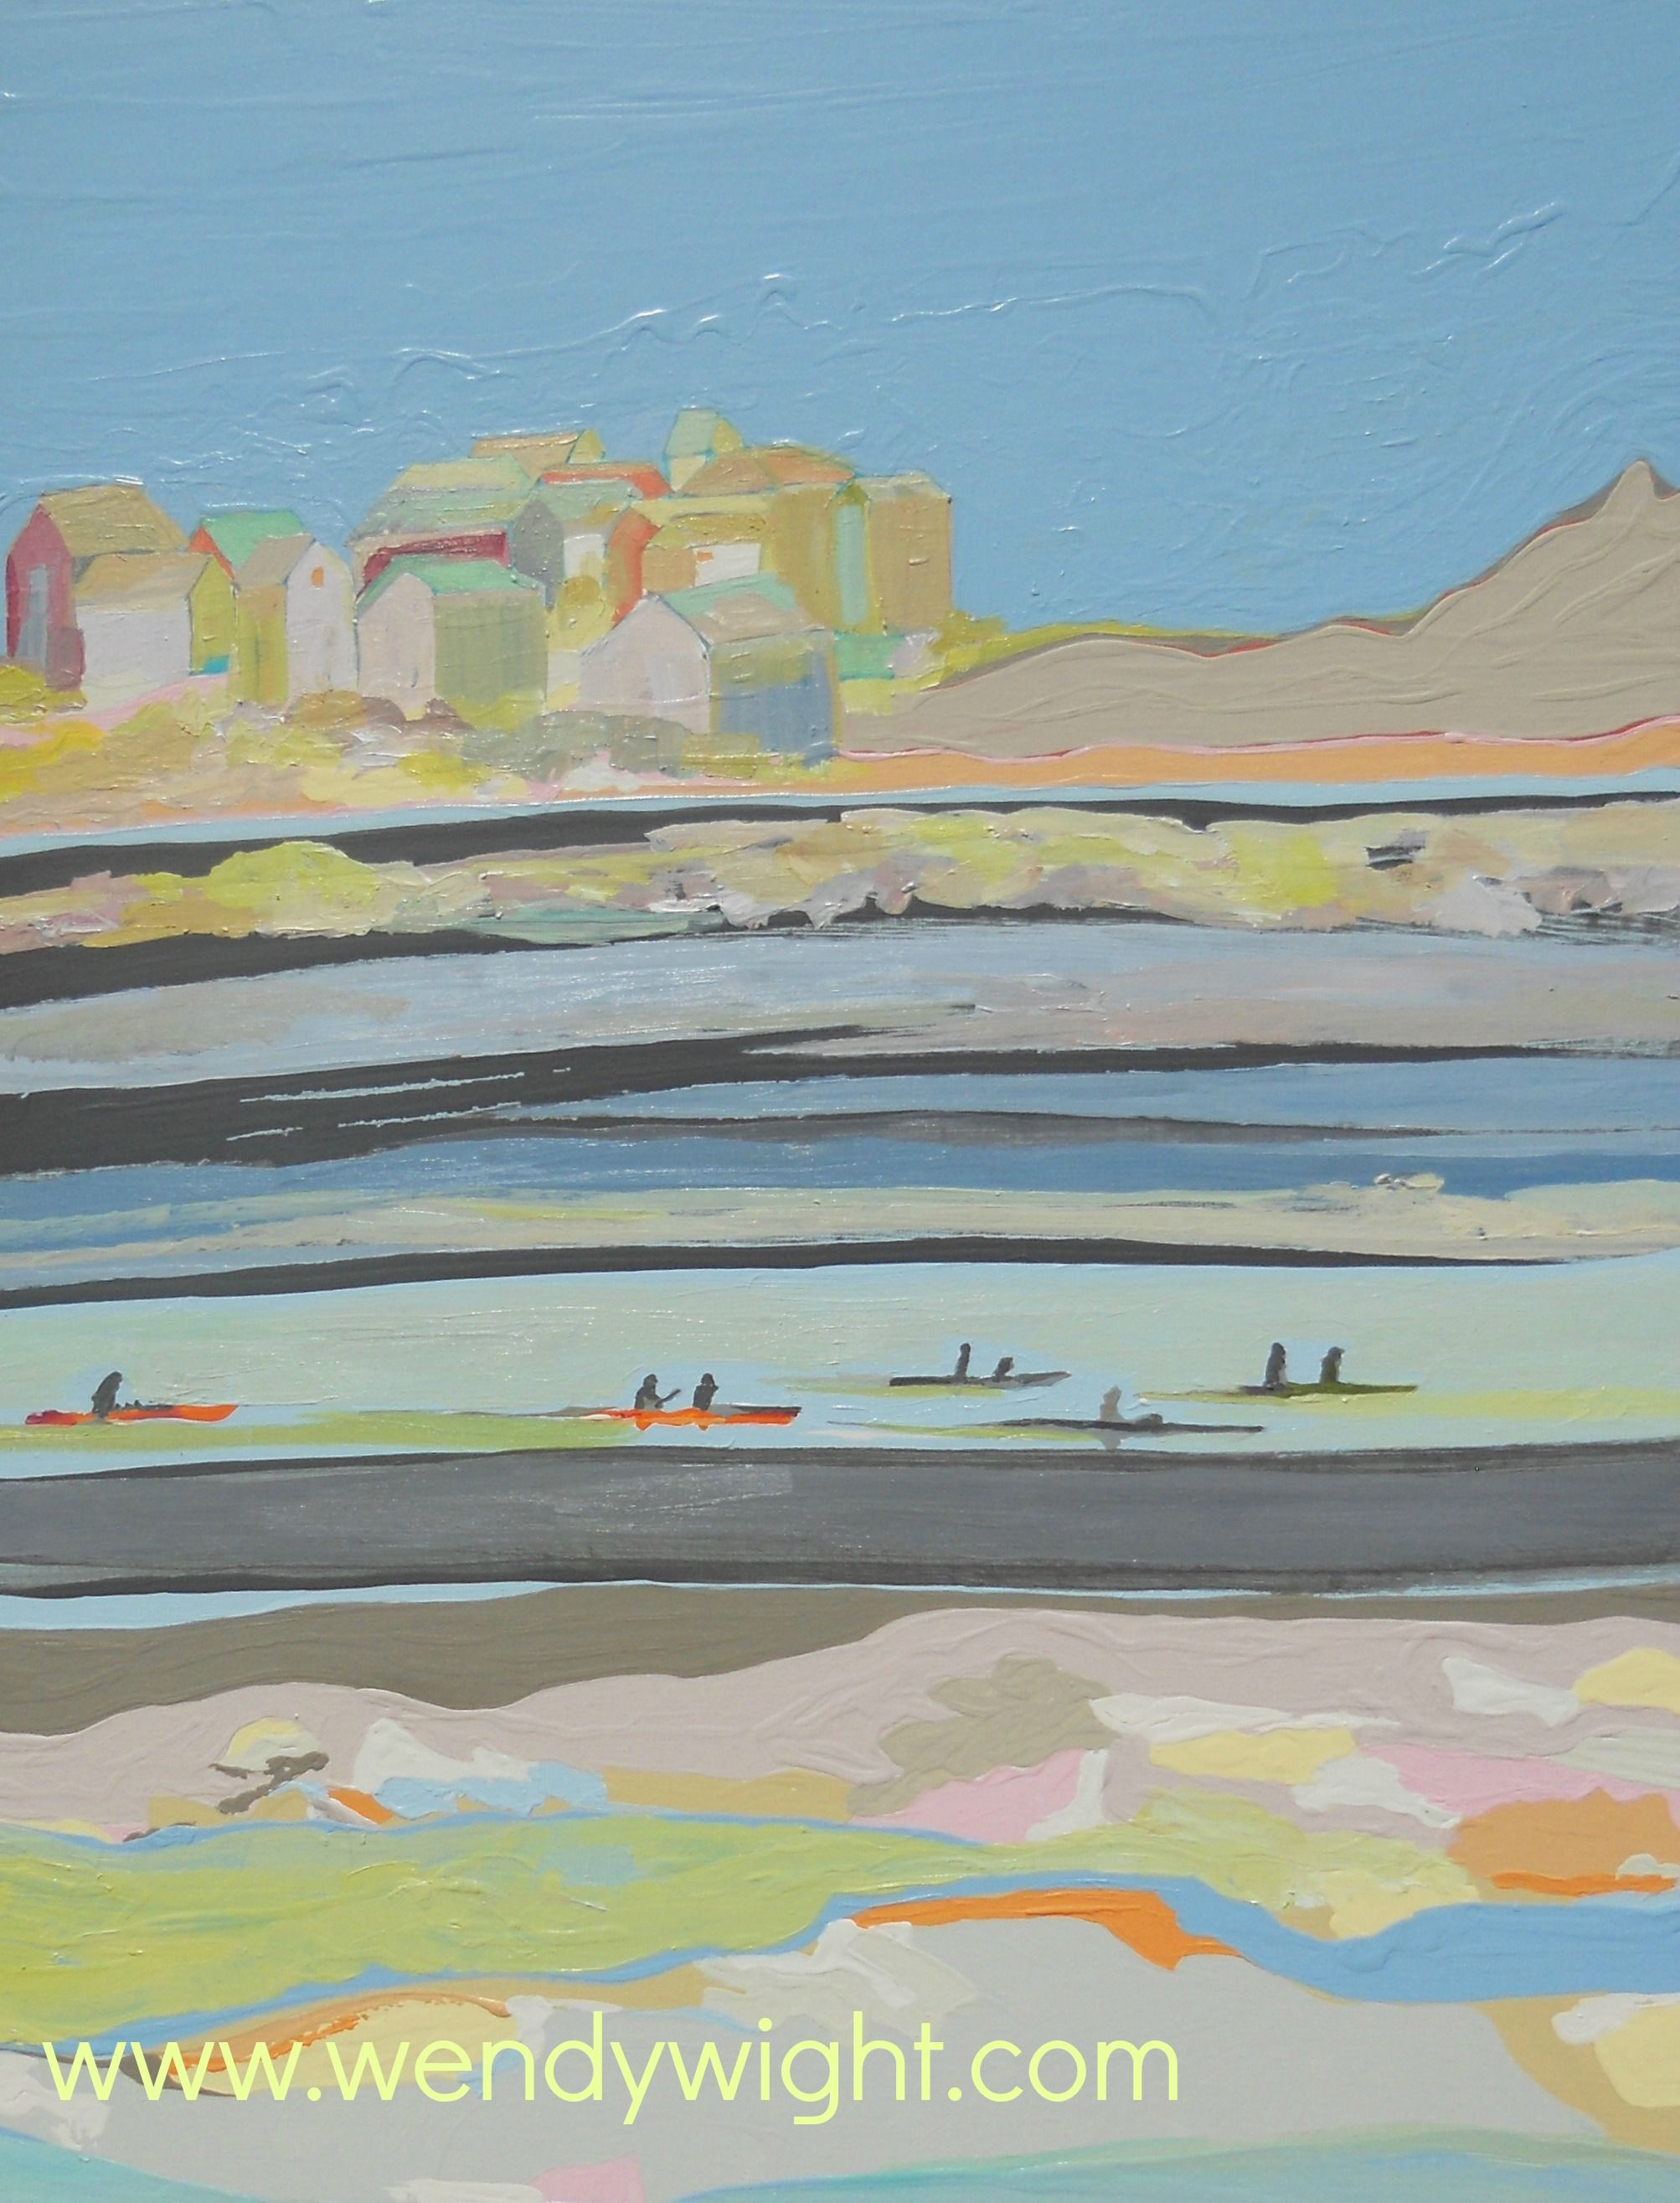 Village, Acrylic on Canvas painting, 40 x 30.  Kayak boats ocean, houses with blue sky and beach. $400 Wendy Wight, Artist http://www.wendywight.com